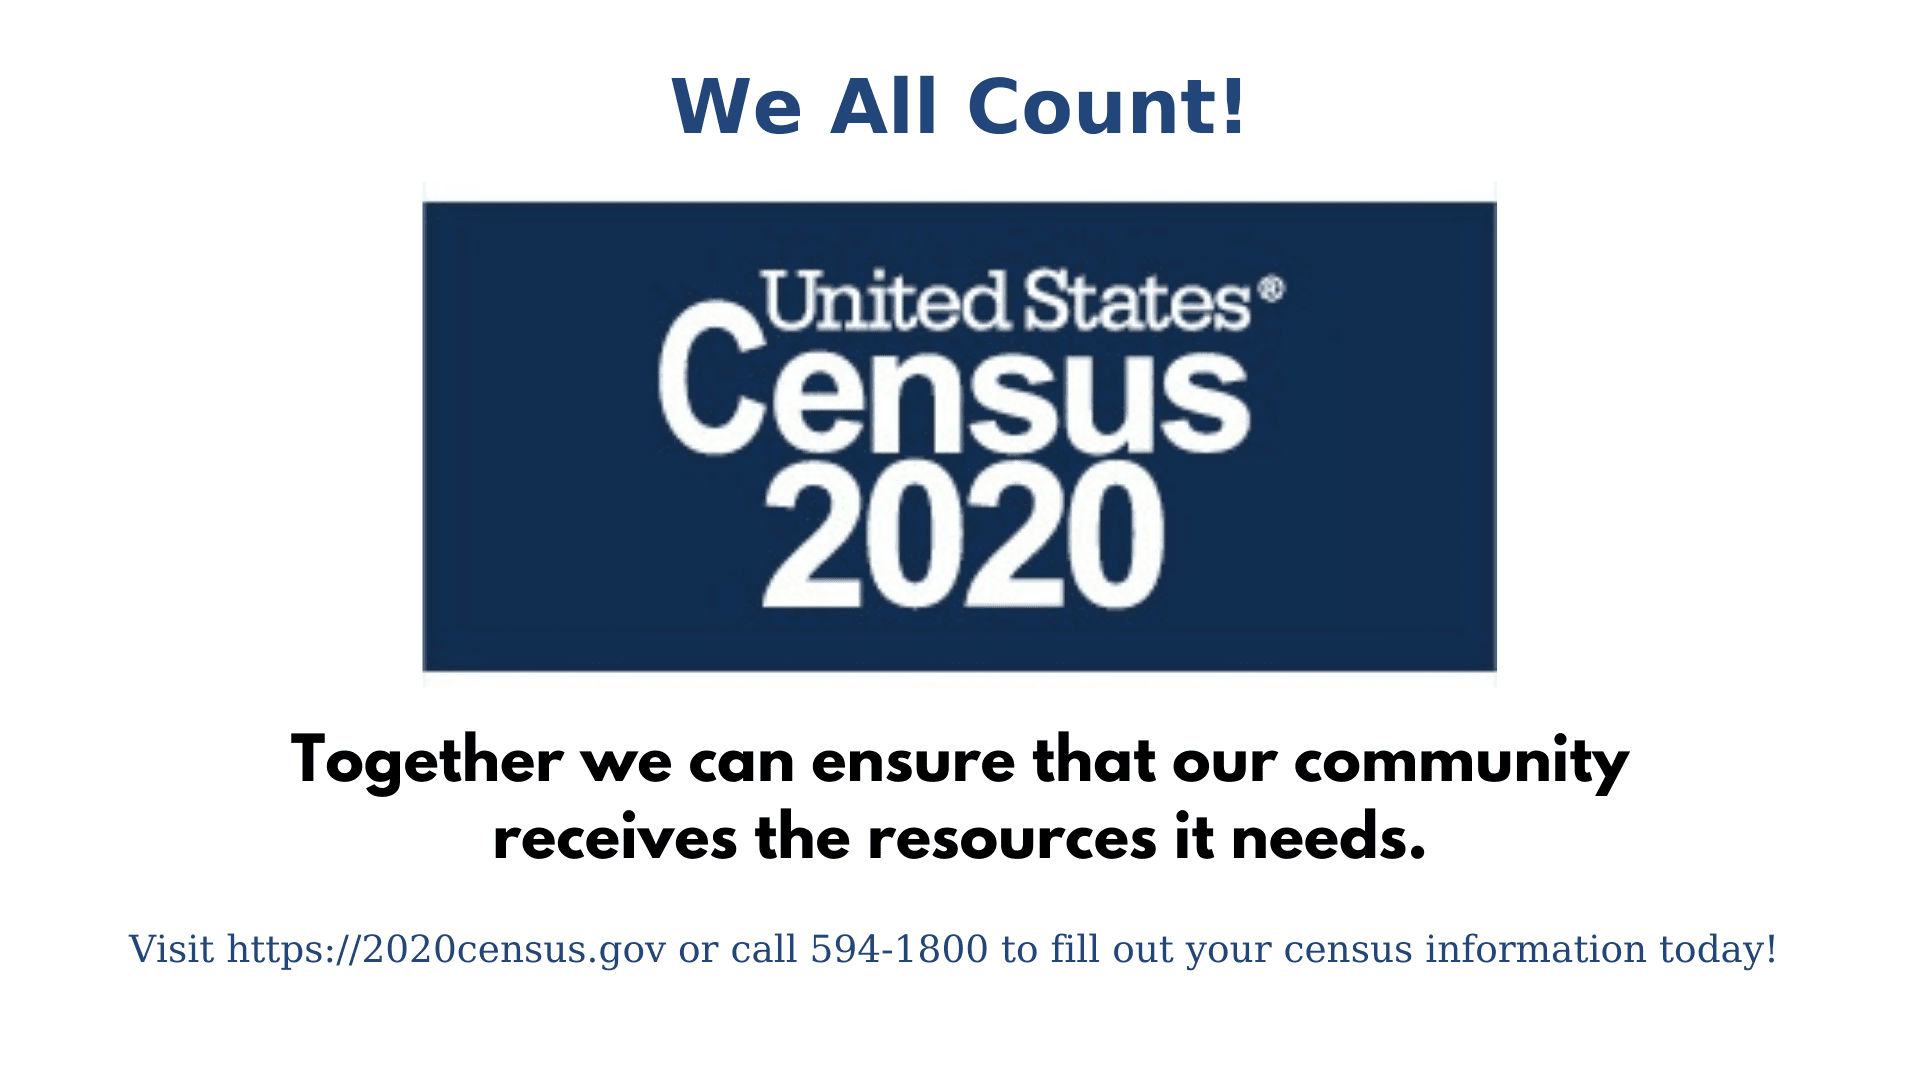 U.S. Census https://2020census.gov